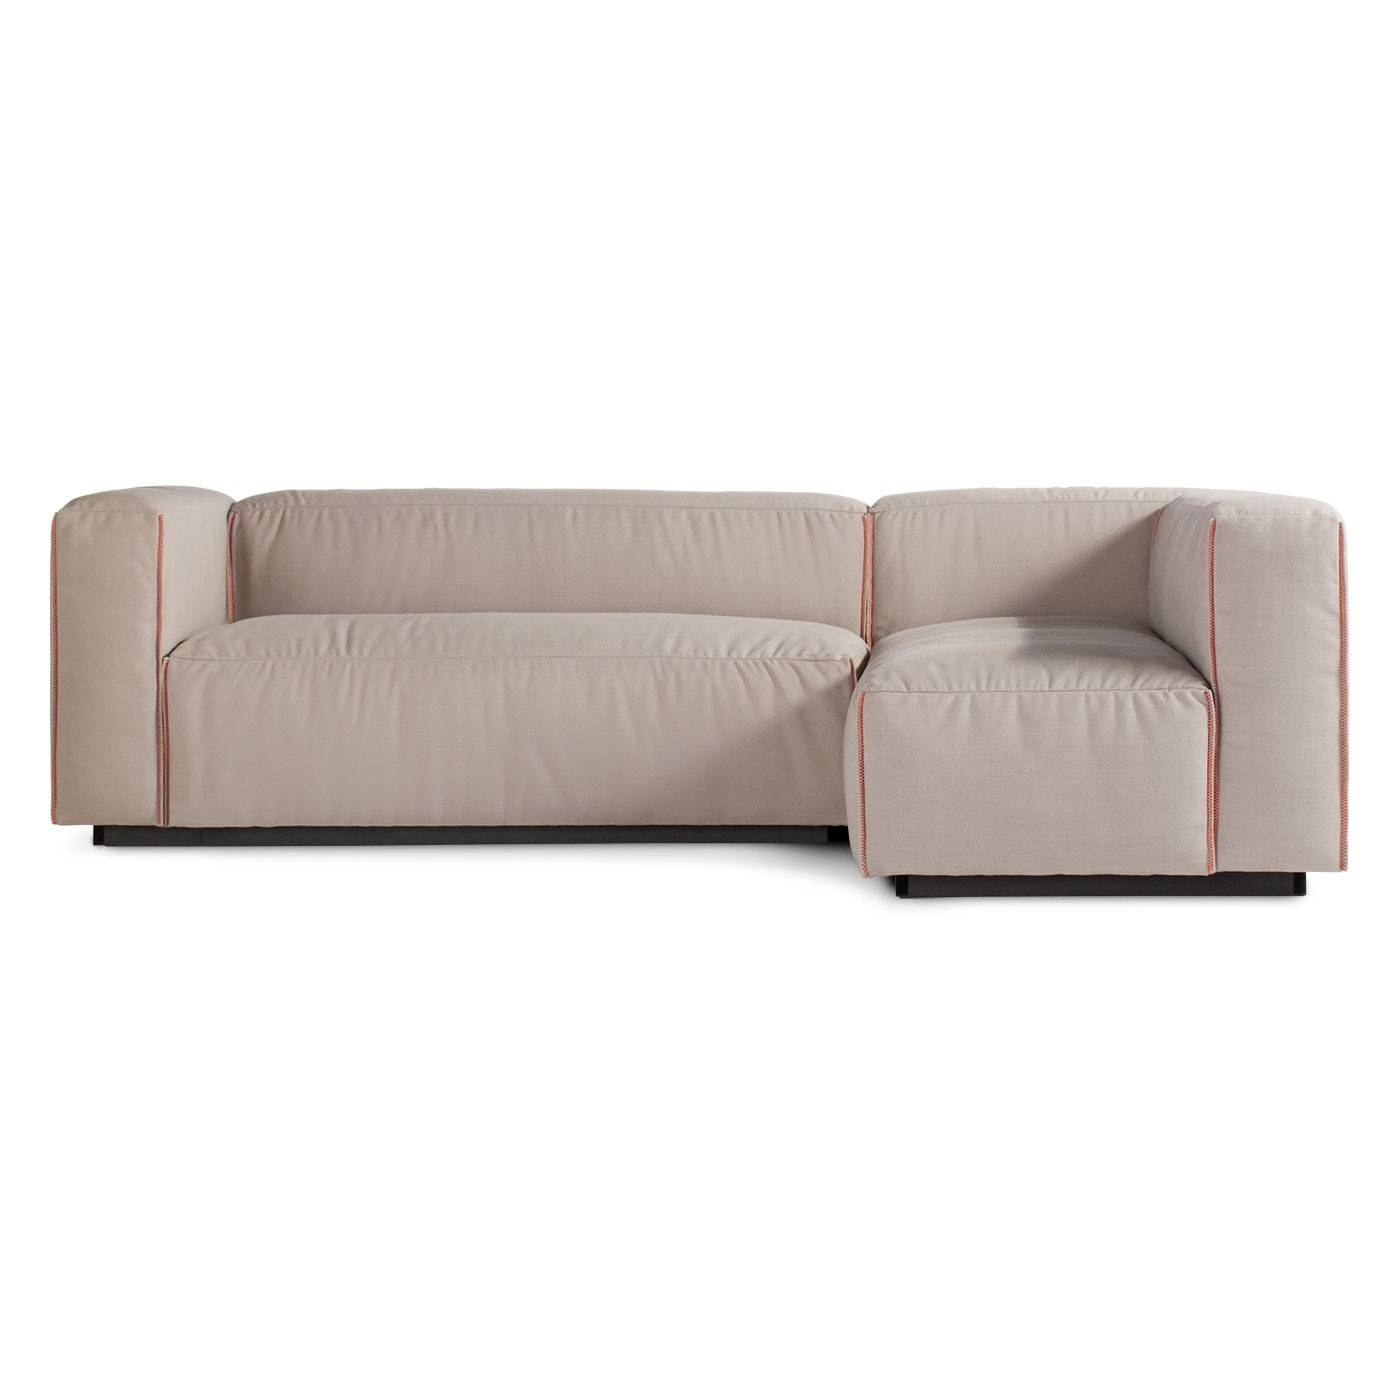 Modern Small Sectional Sofa 90 With Modern Small Sectional Sofa inside Modern Small Sectional Sofas (Image 9 of 15)